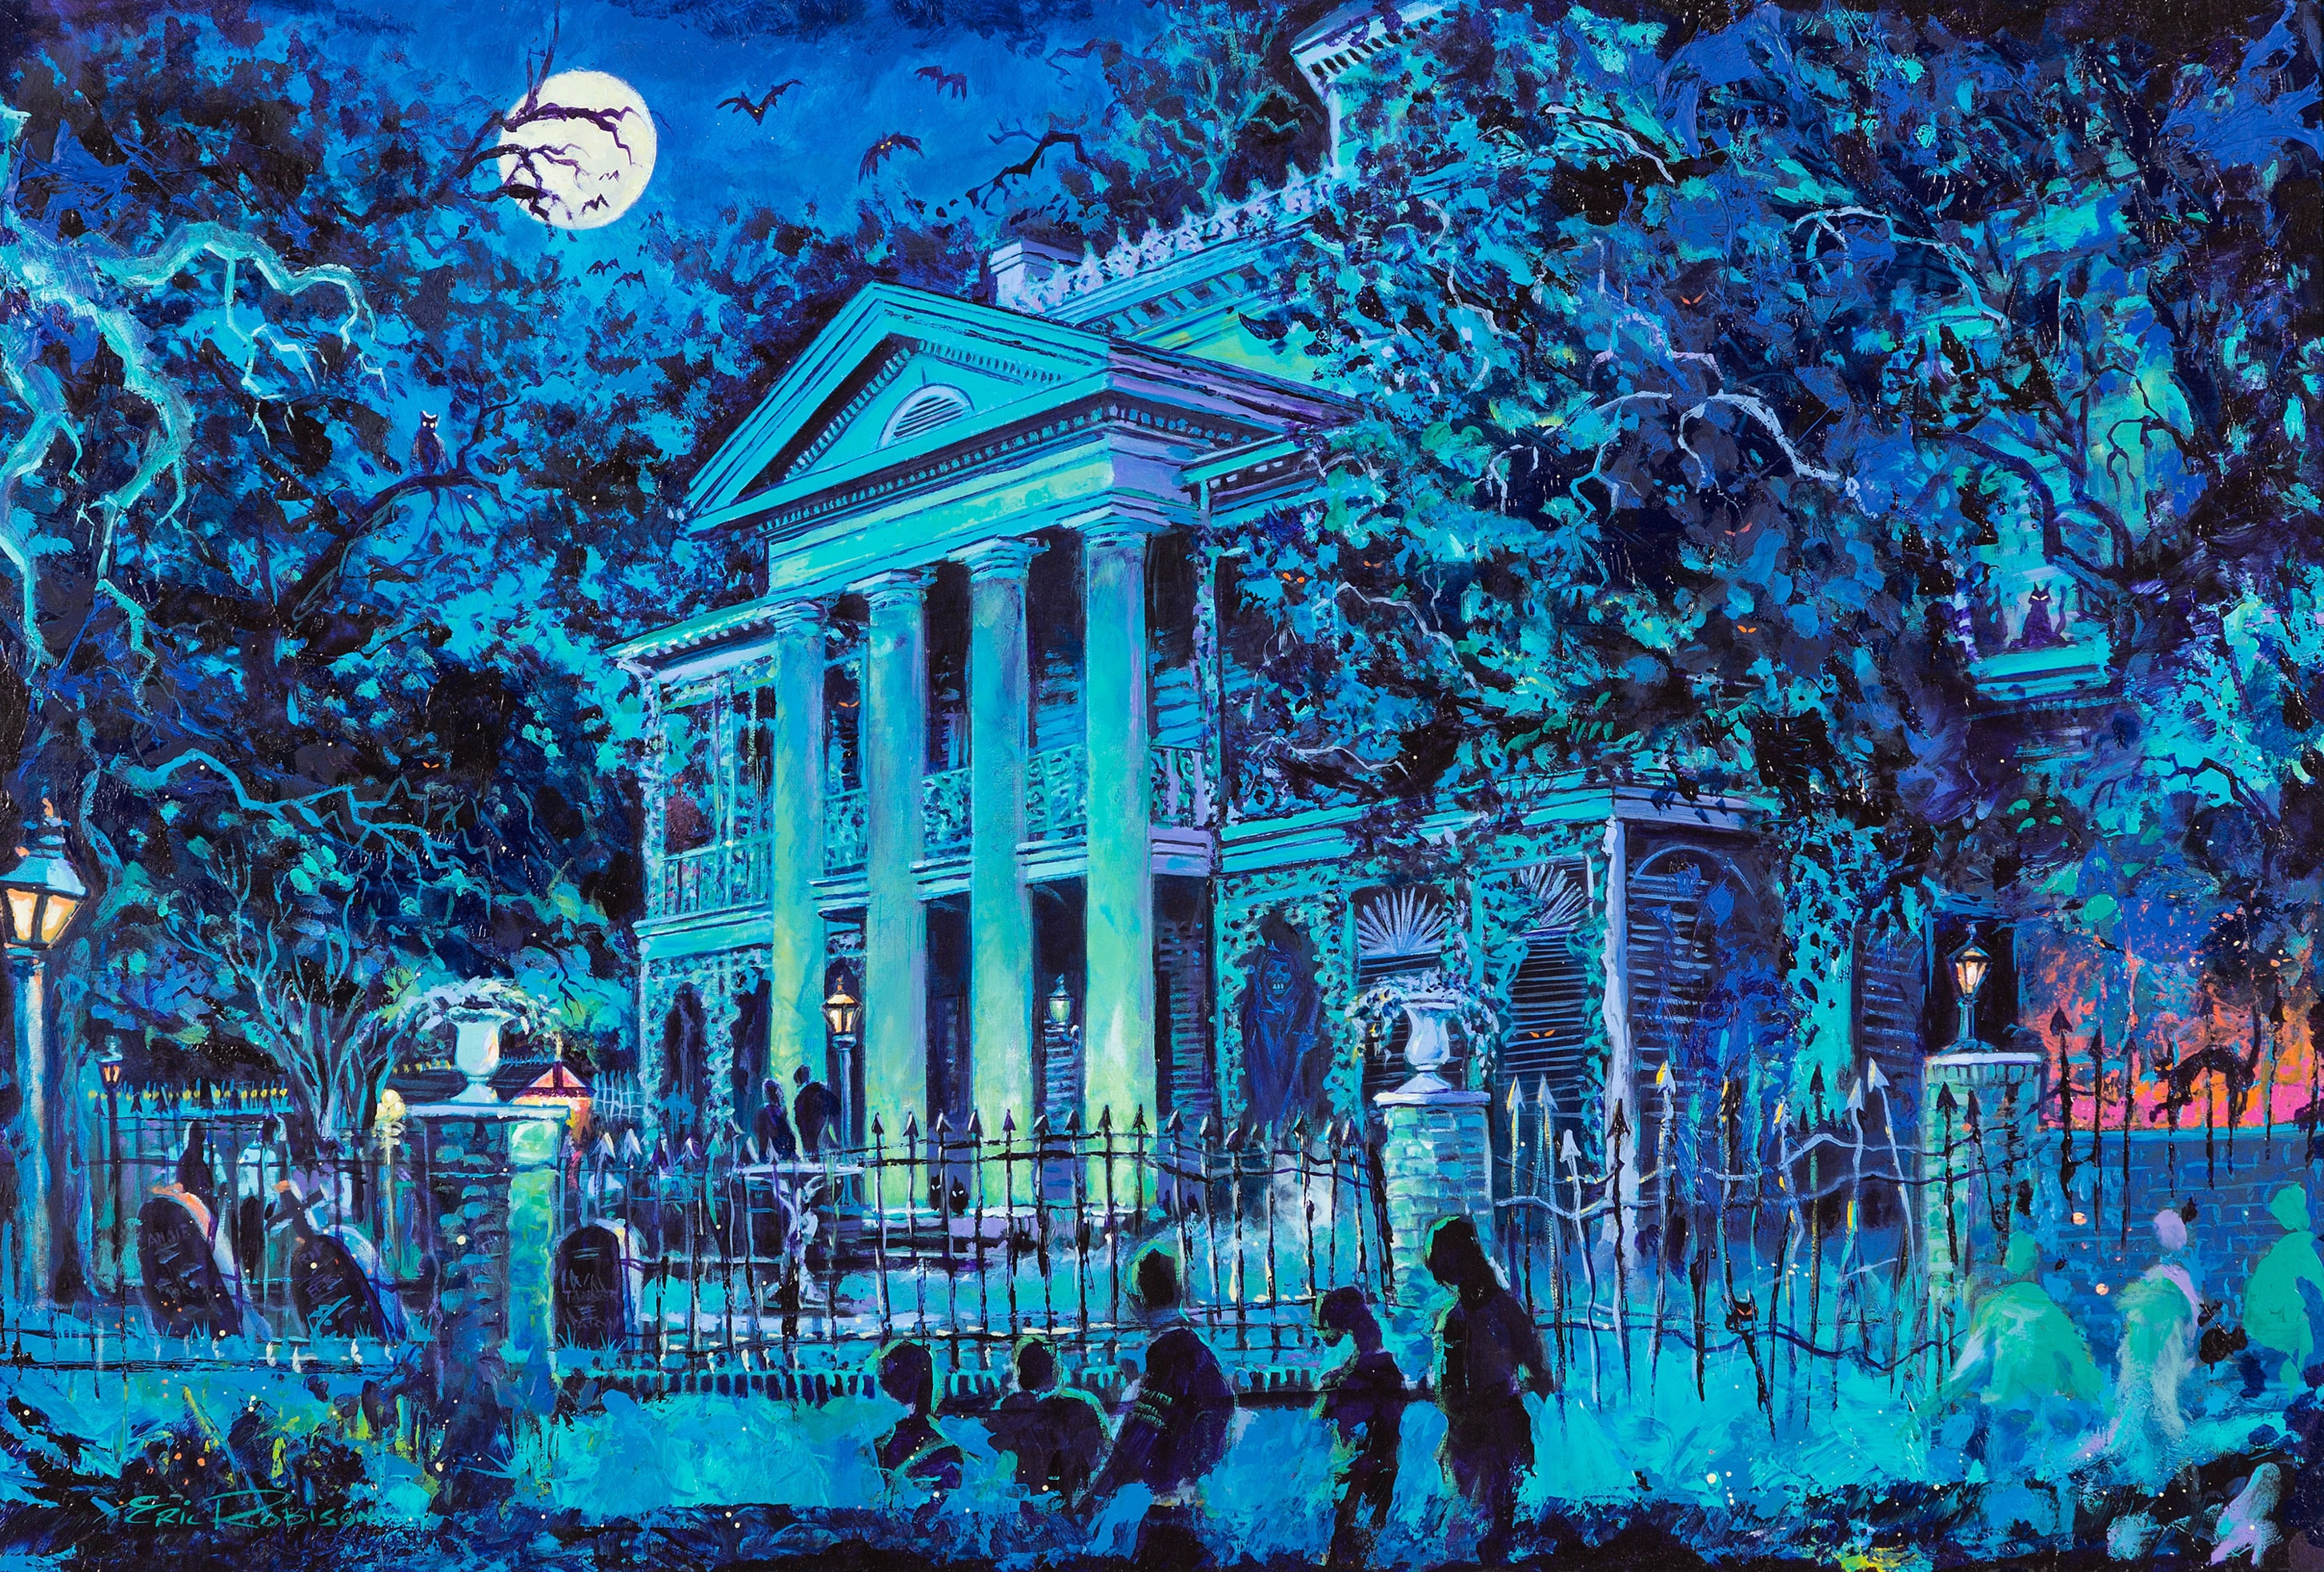 Peinture originale de Haunted Mansion de Eric Robinson, 1999